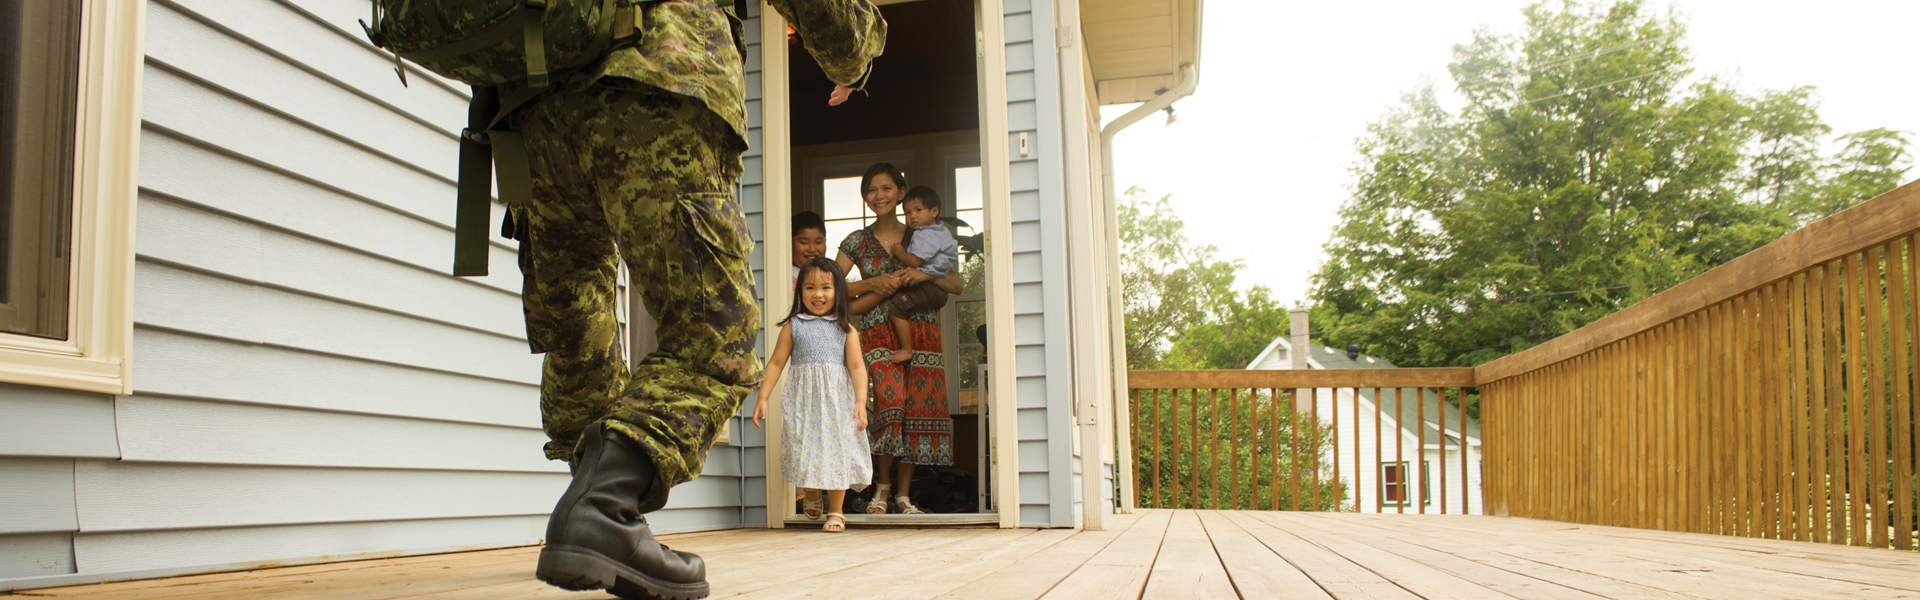 Soldier returning home greeting his family.